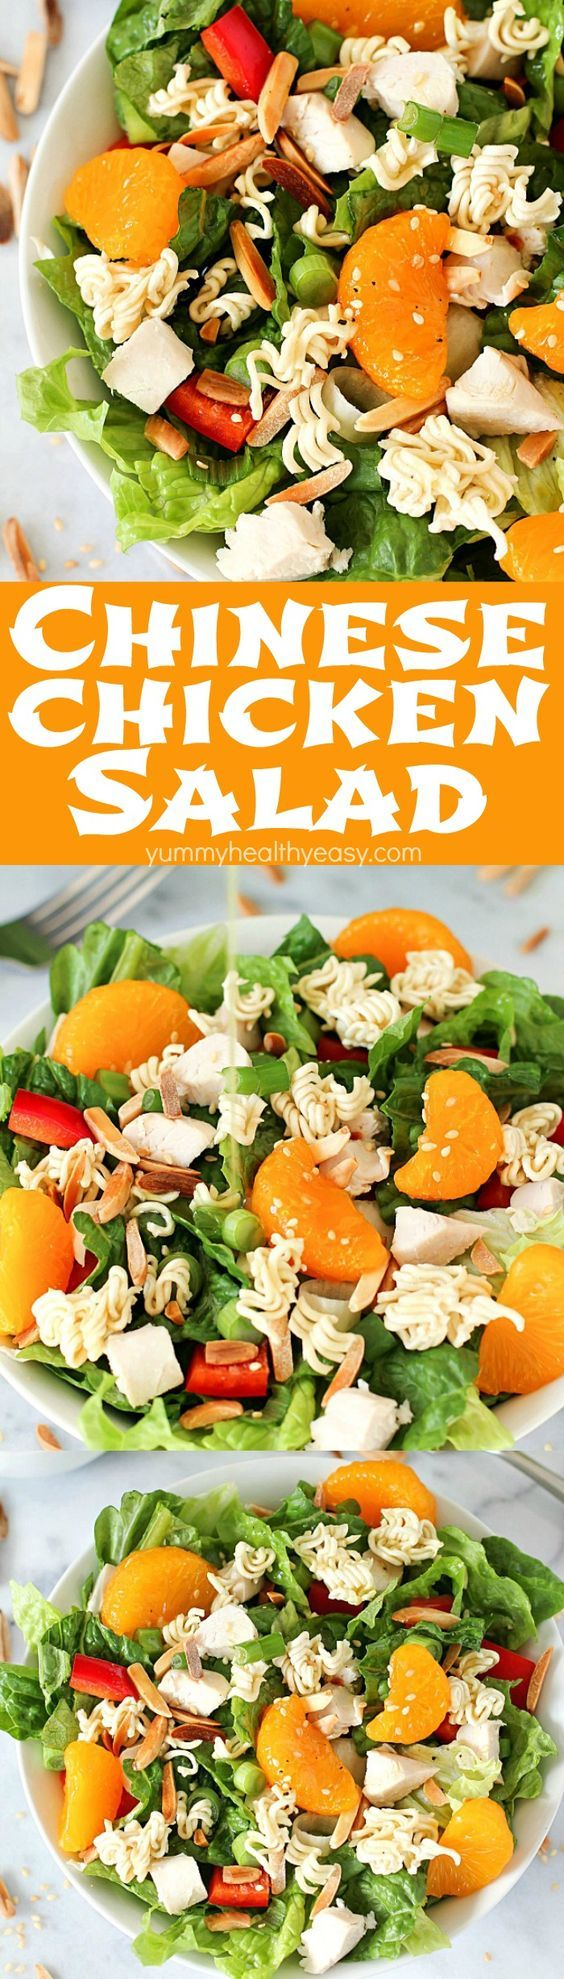 Chinese Chicken Salad with Homemade Easy Dressing